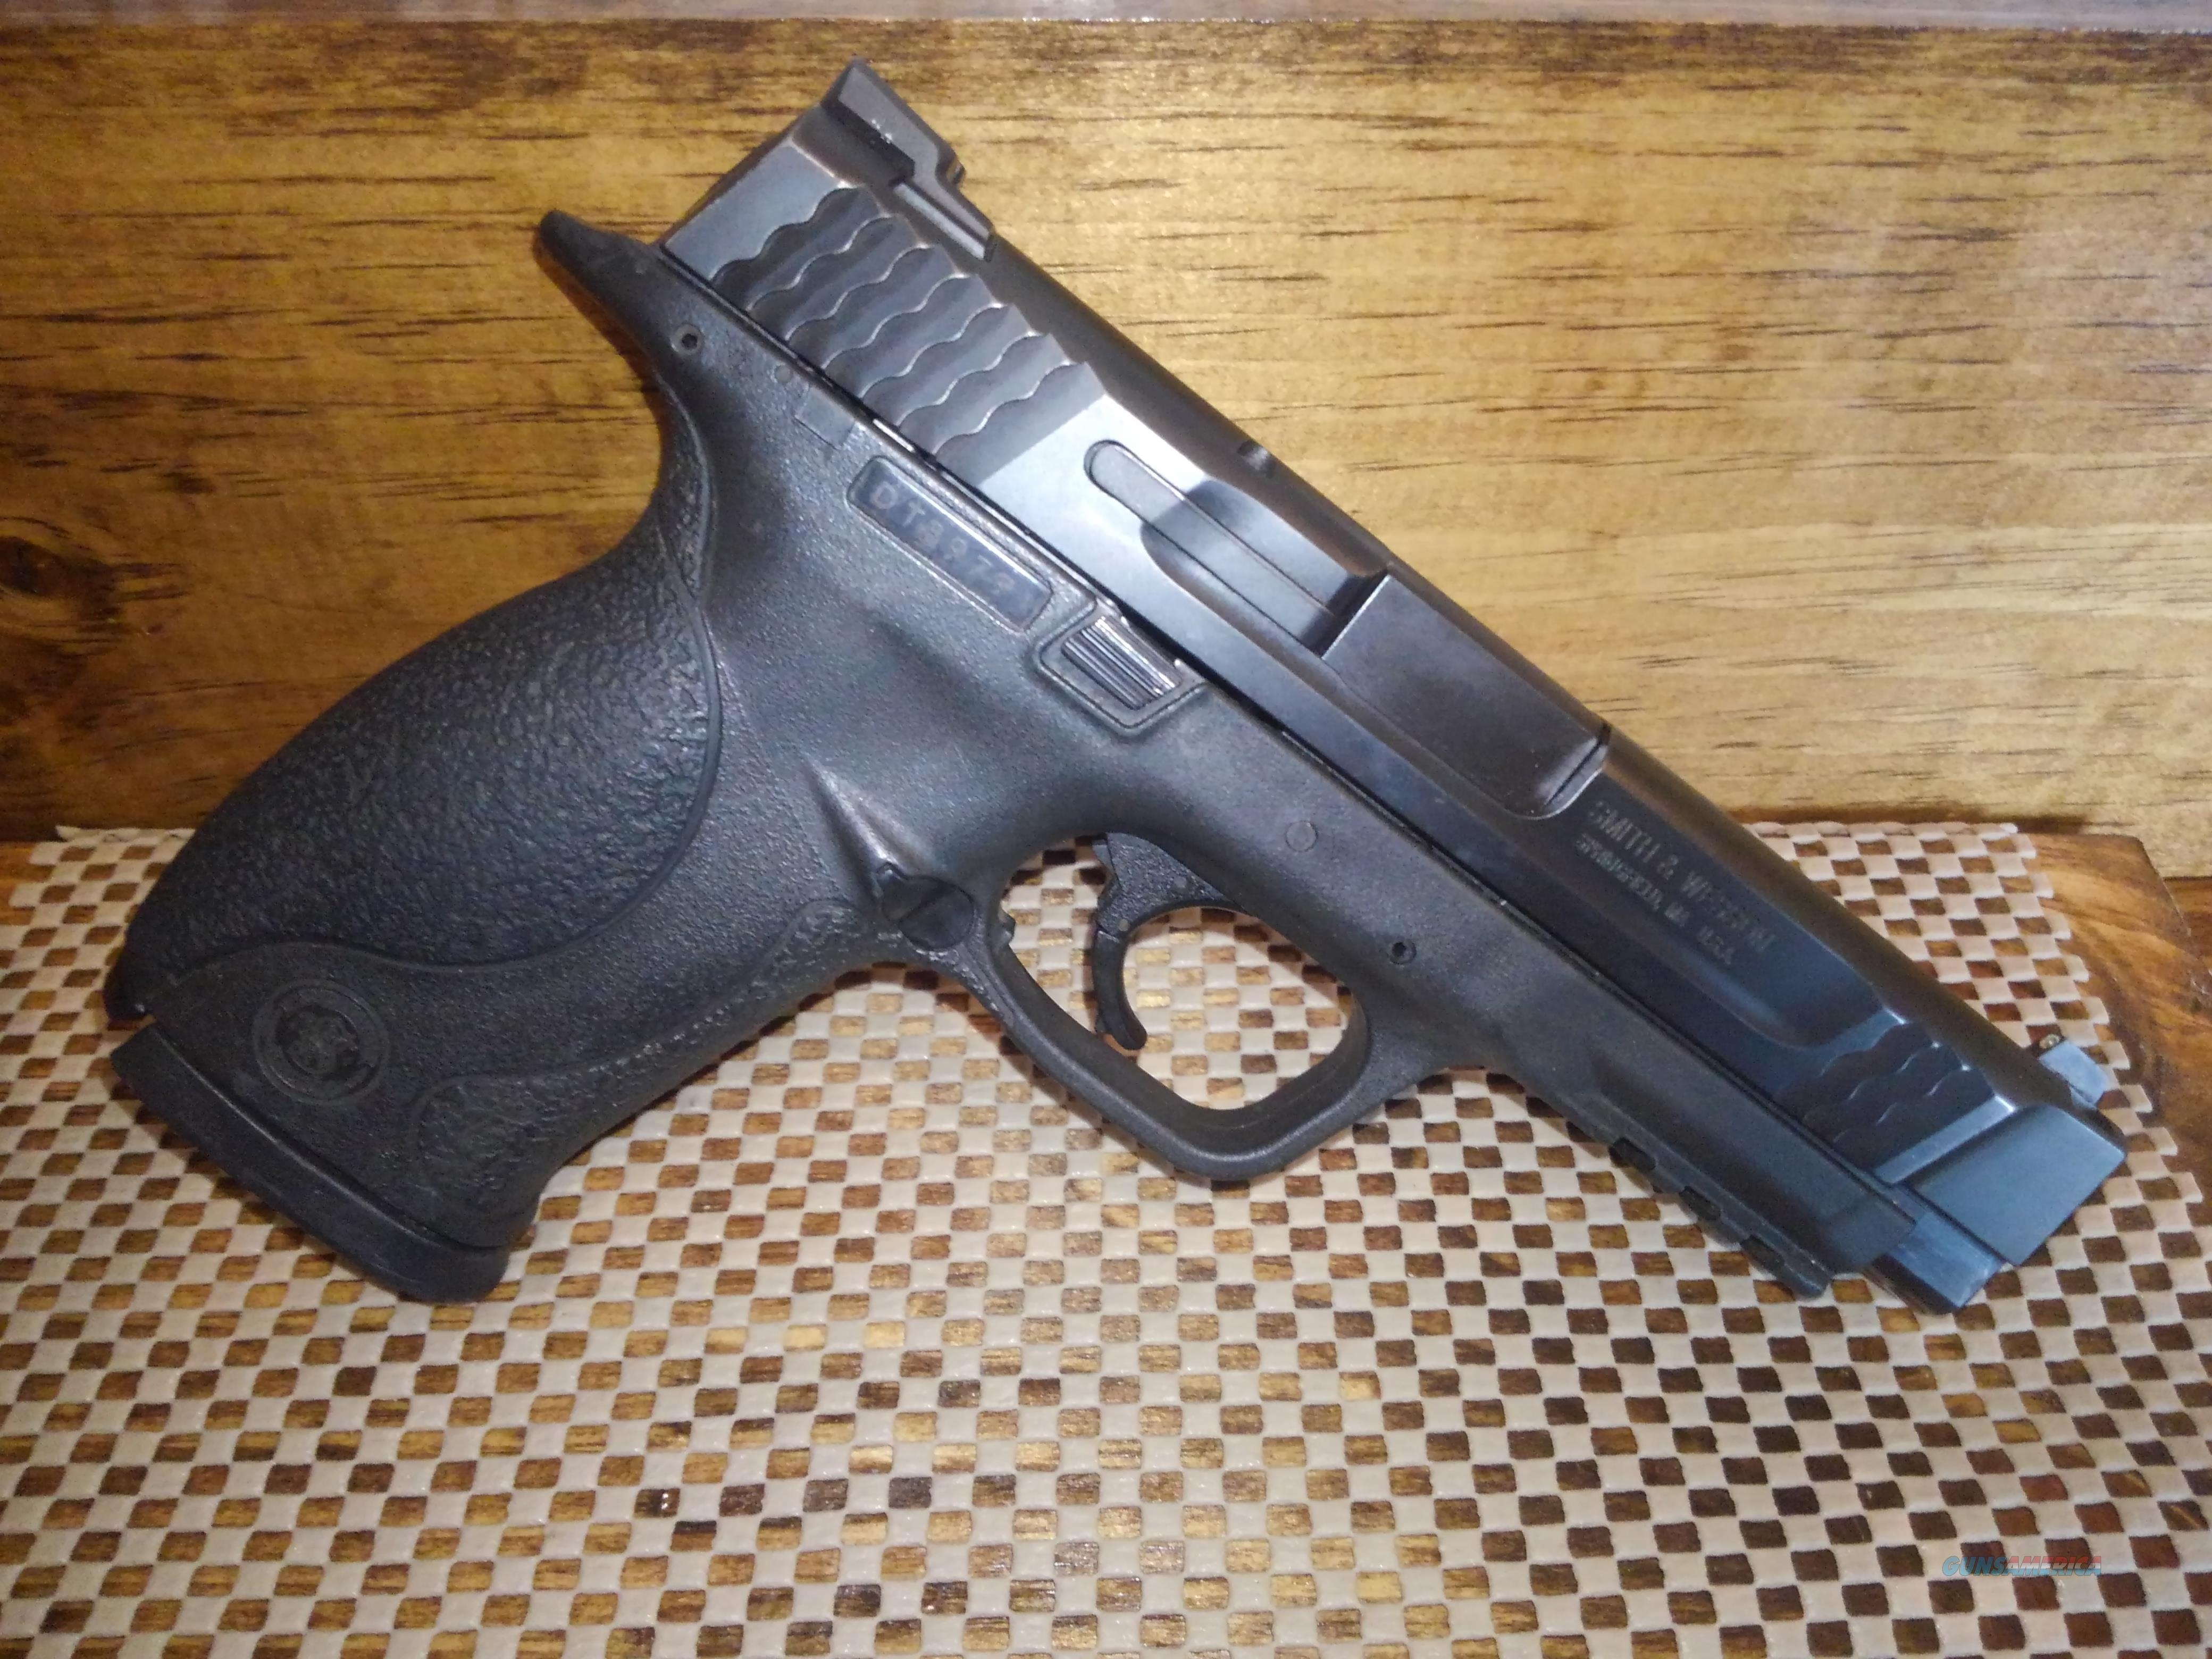 SMITH&WESSON M&P 45 NS 1-10RD MAG, FREE SHIPPING NO CC FEE  Guns > Pistols > Smith & Wesson Pistols - Autos > Polymer Frame